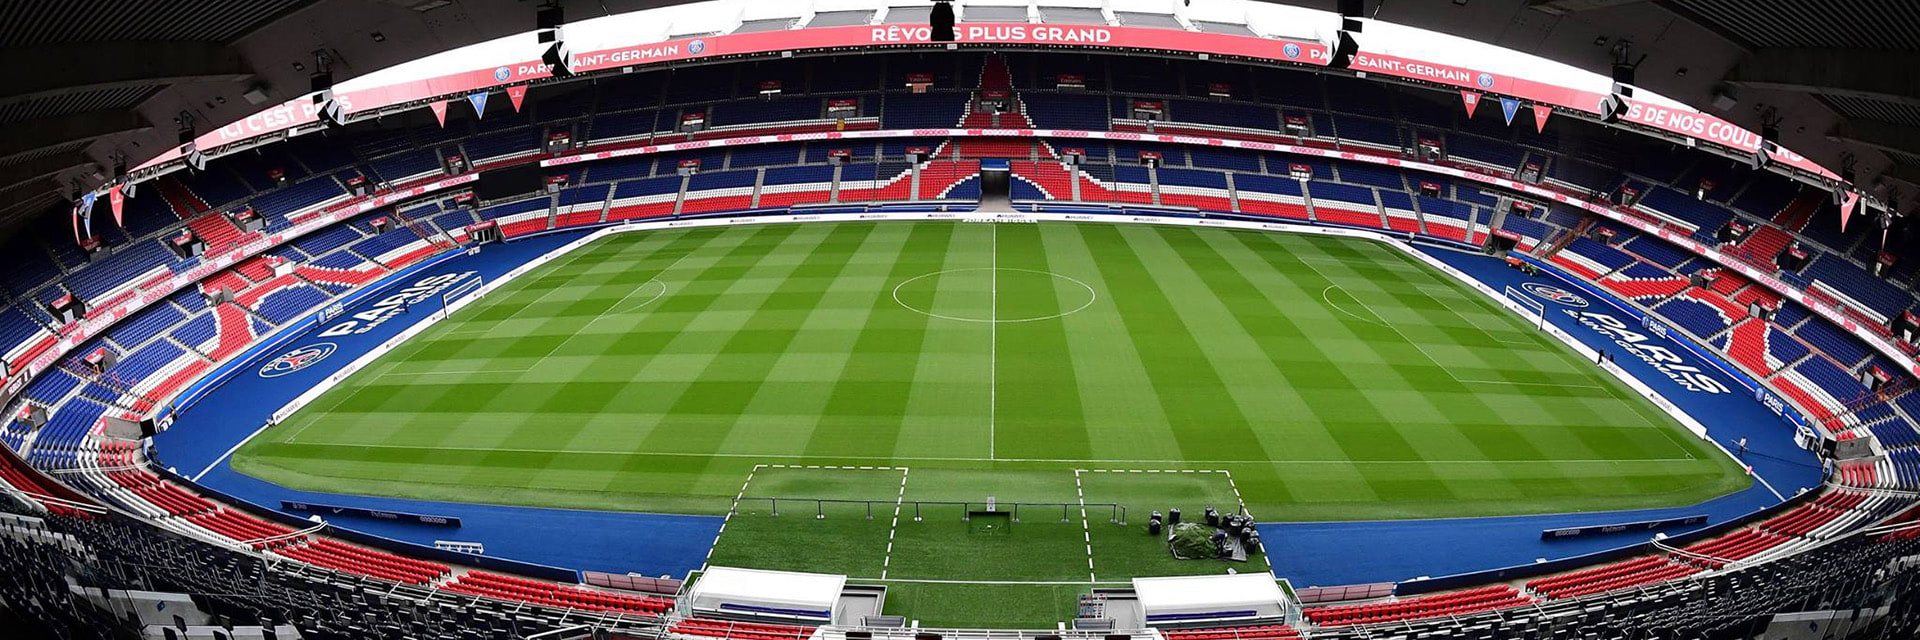 Paris Saint-Germain - Stade Brestois 29, 6 Mayat 0:00